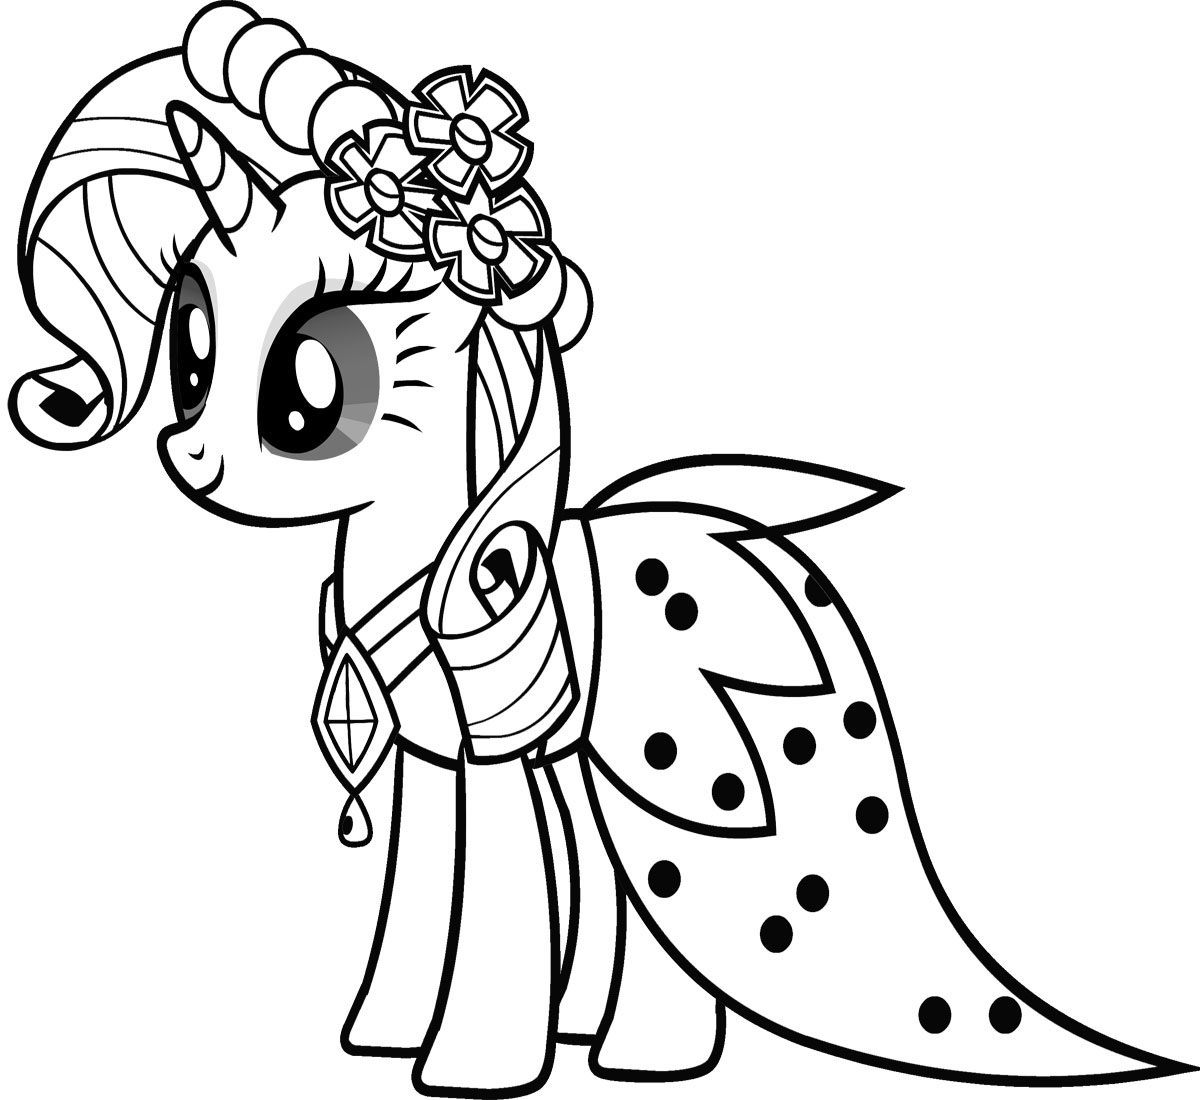 y little pony coloring pages - photo #27